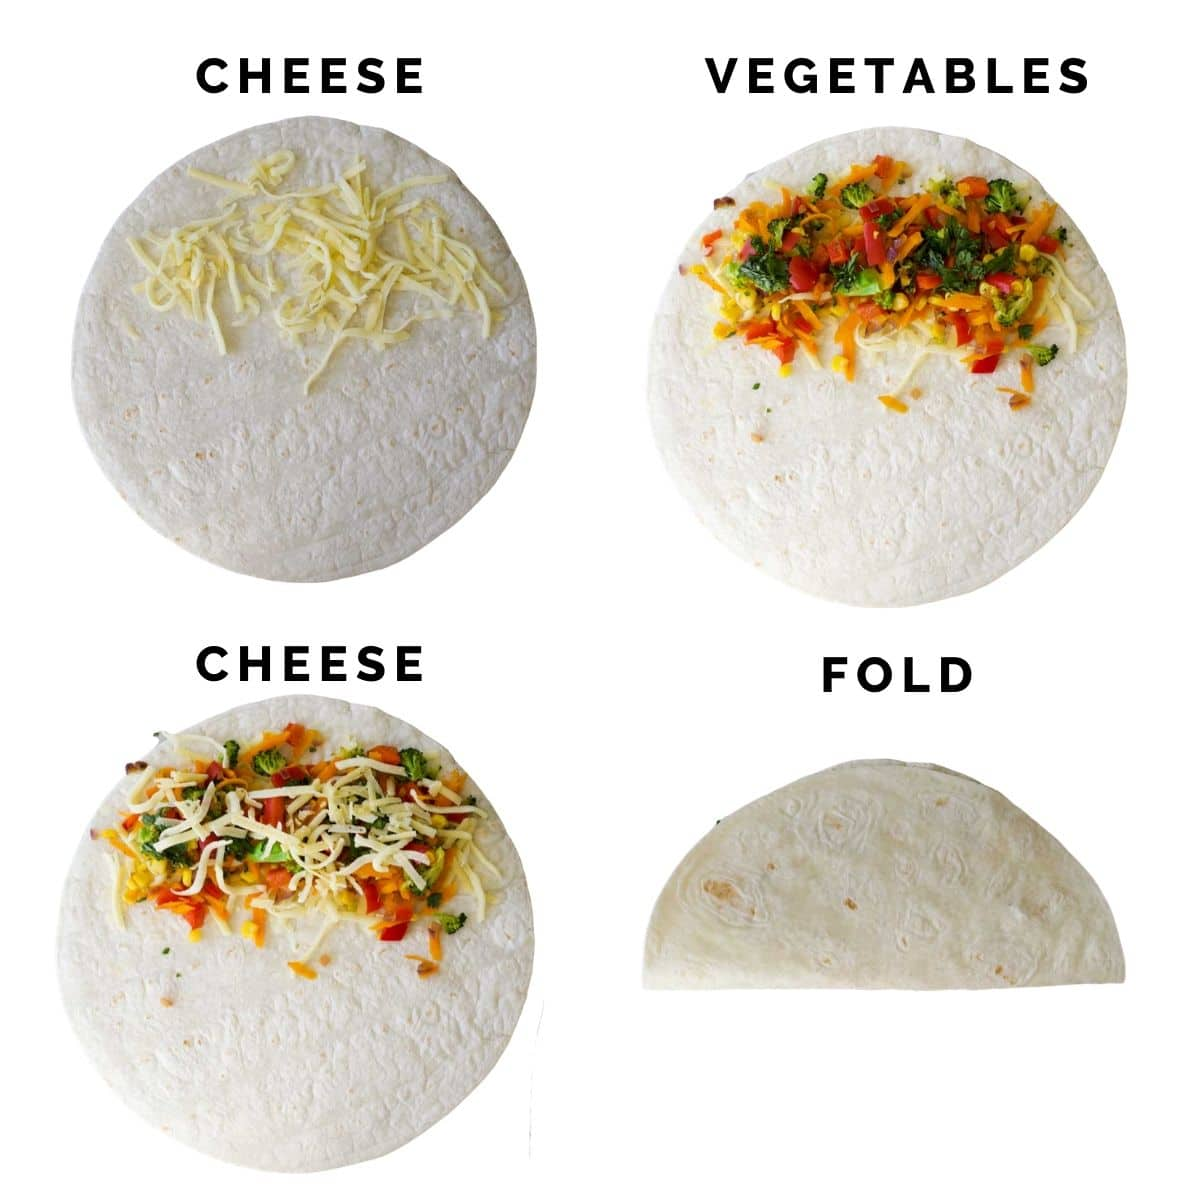 4 Images Showing the Different Step of Folding Vegetable Quesadillas